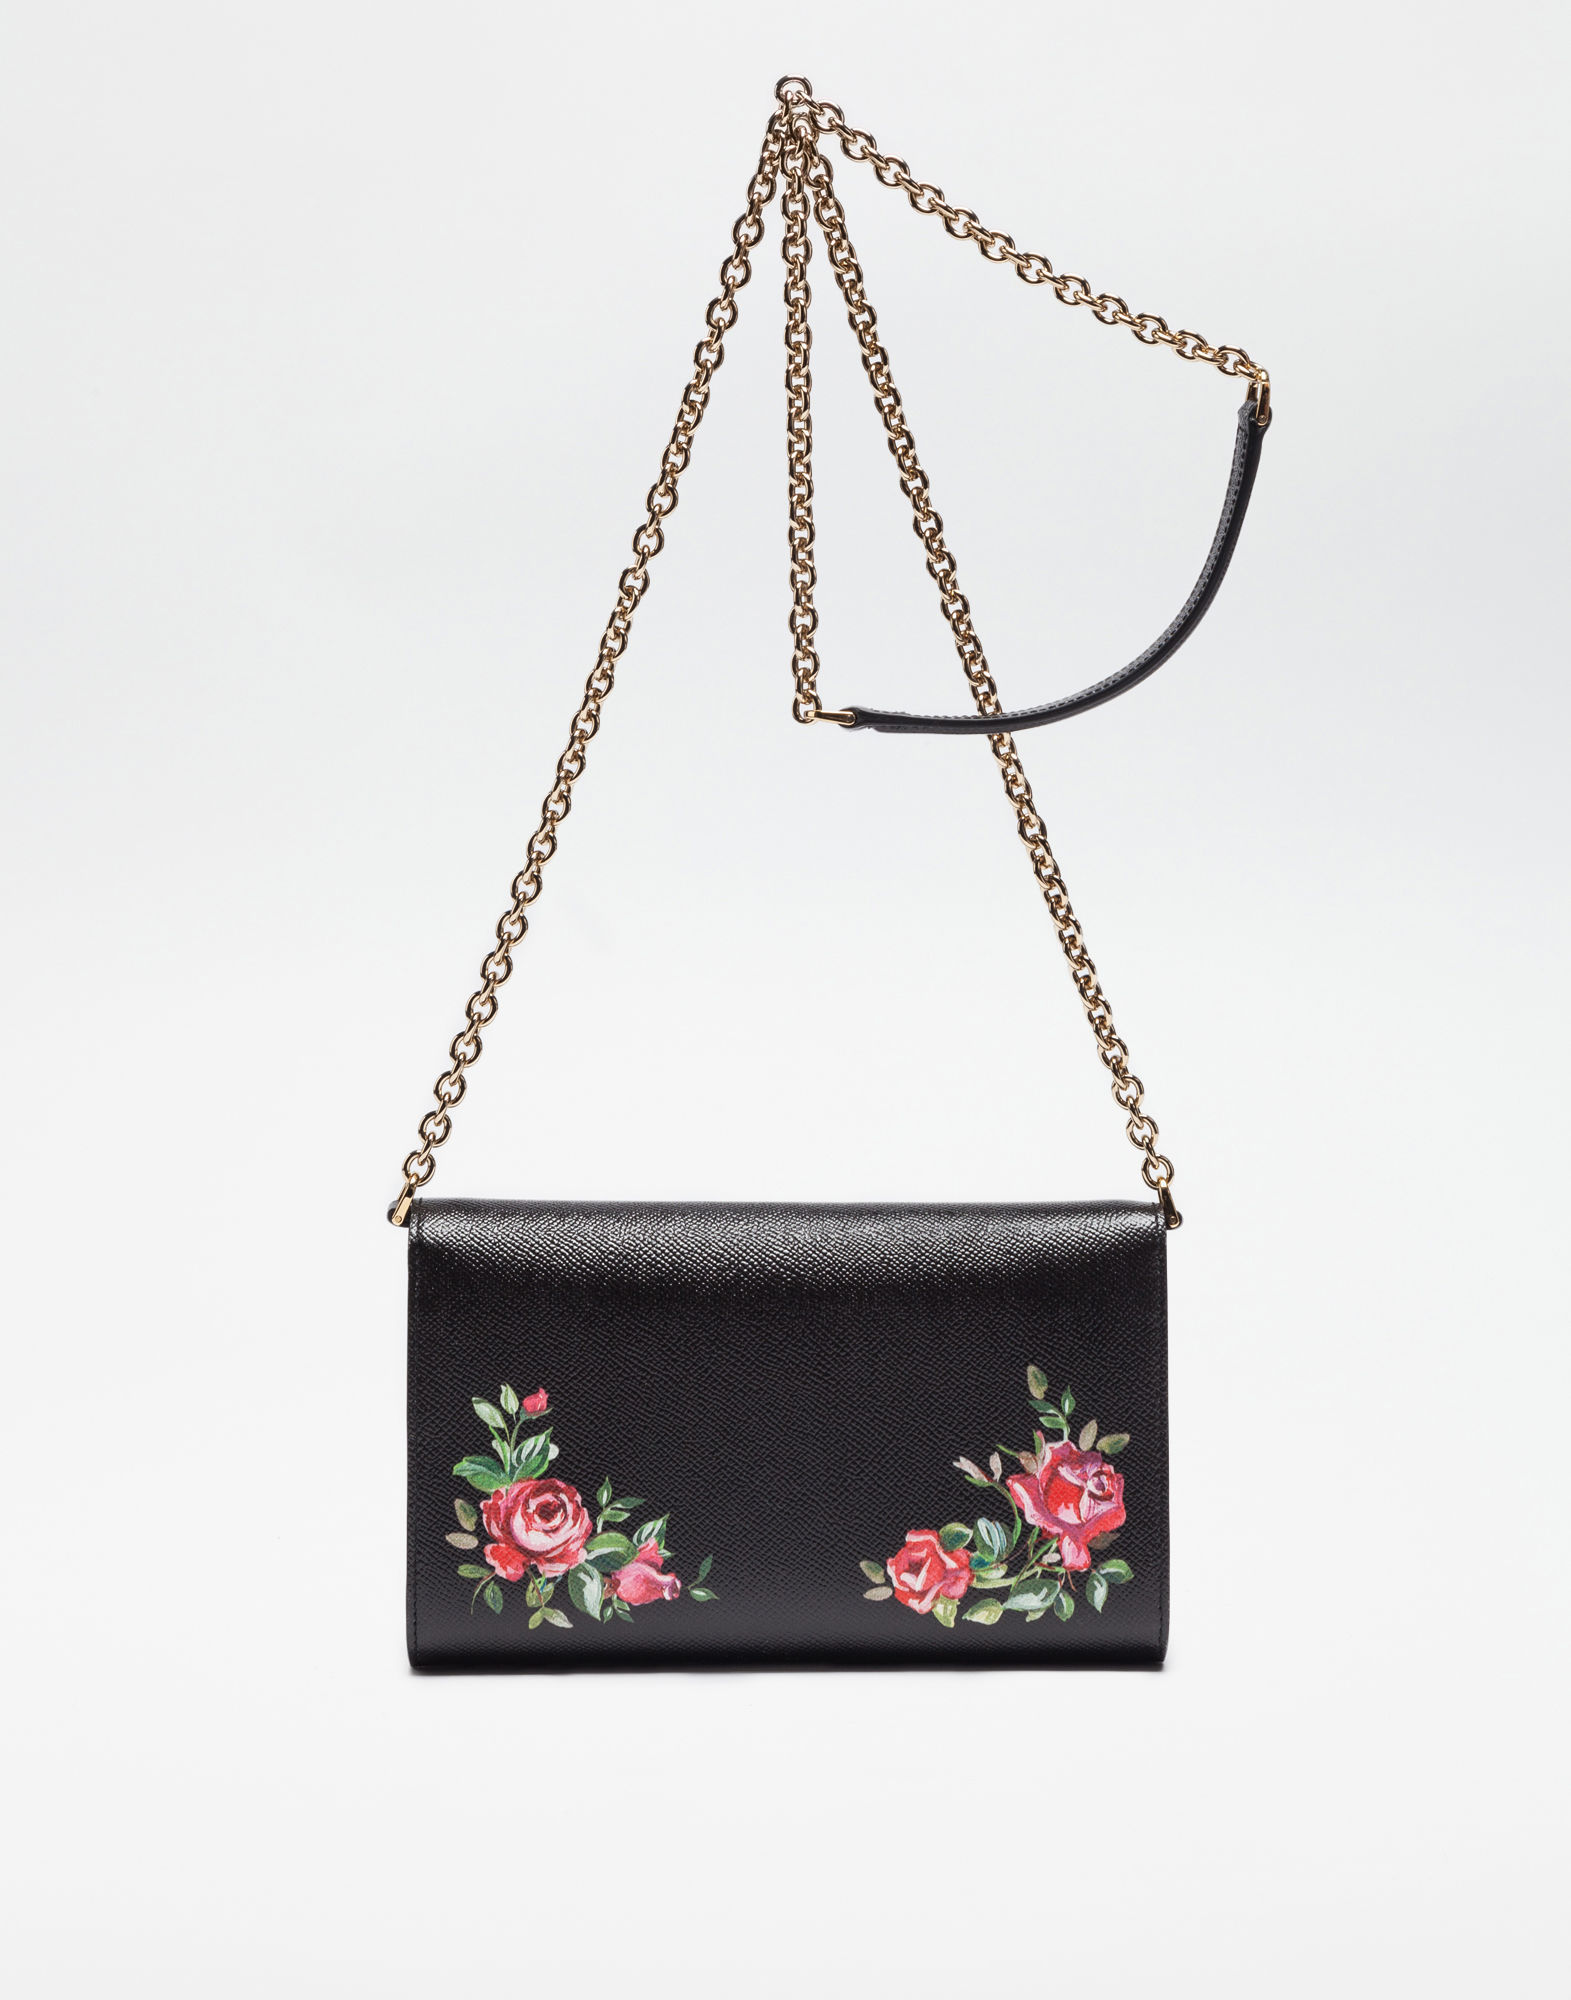 D&G☆DOLCE ポーチ DAUPHINEプリントレザー☆クラッチバッグ